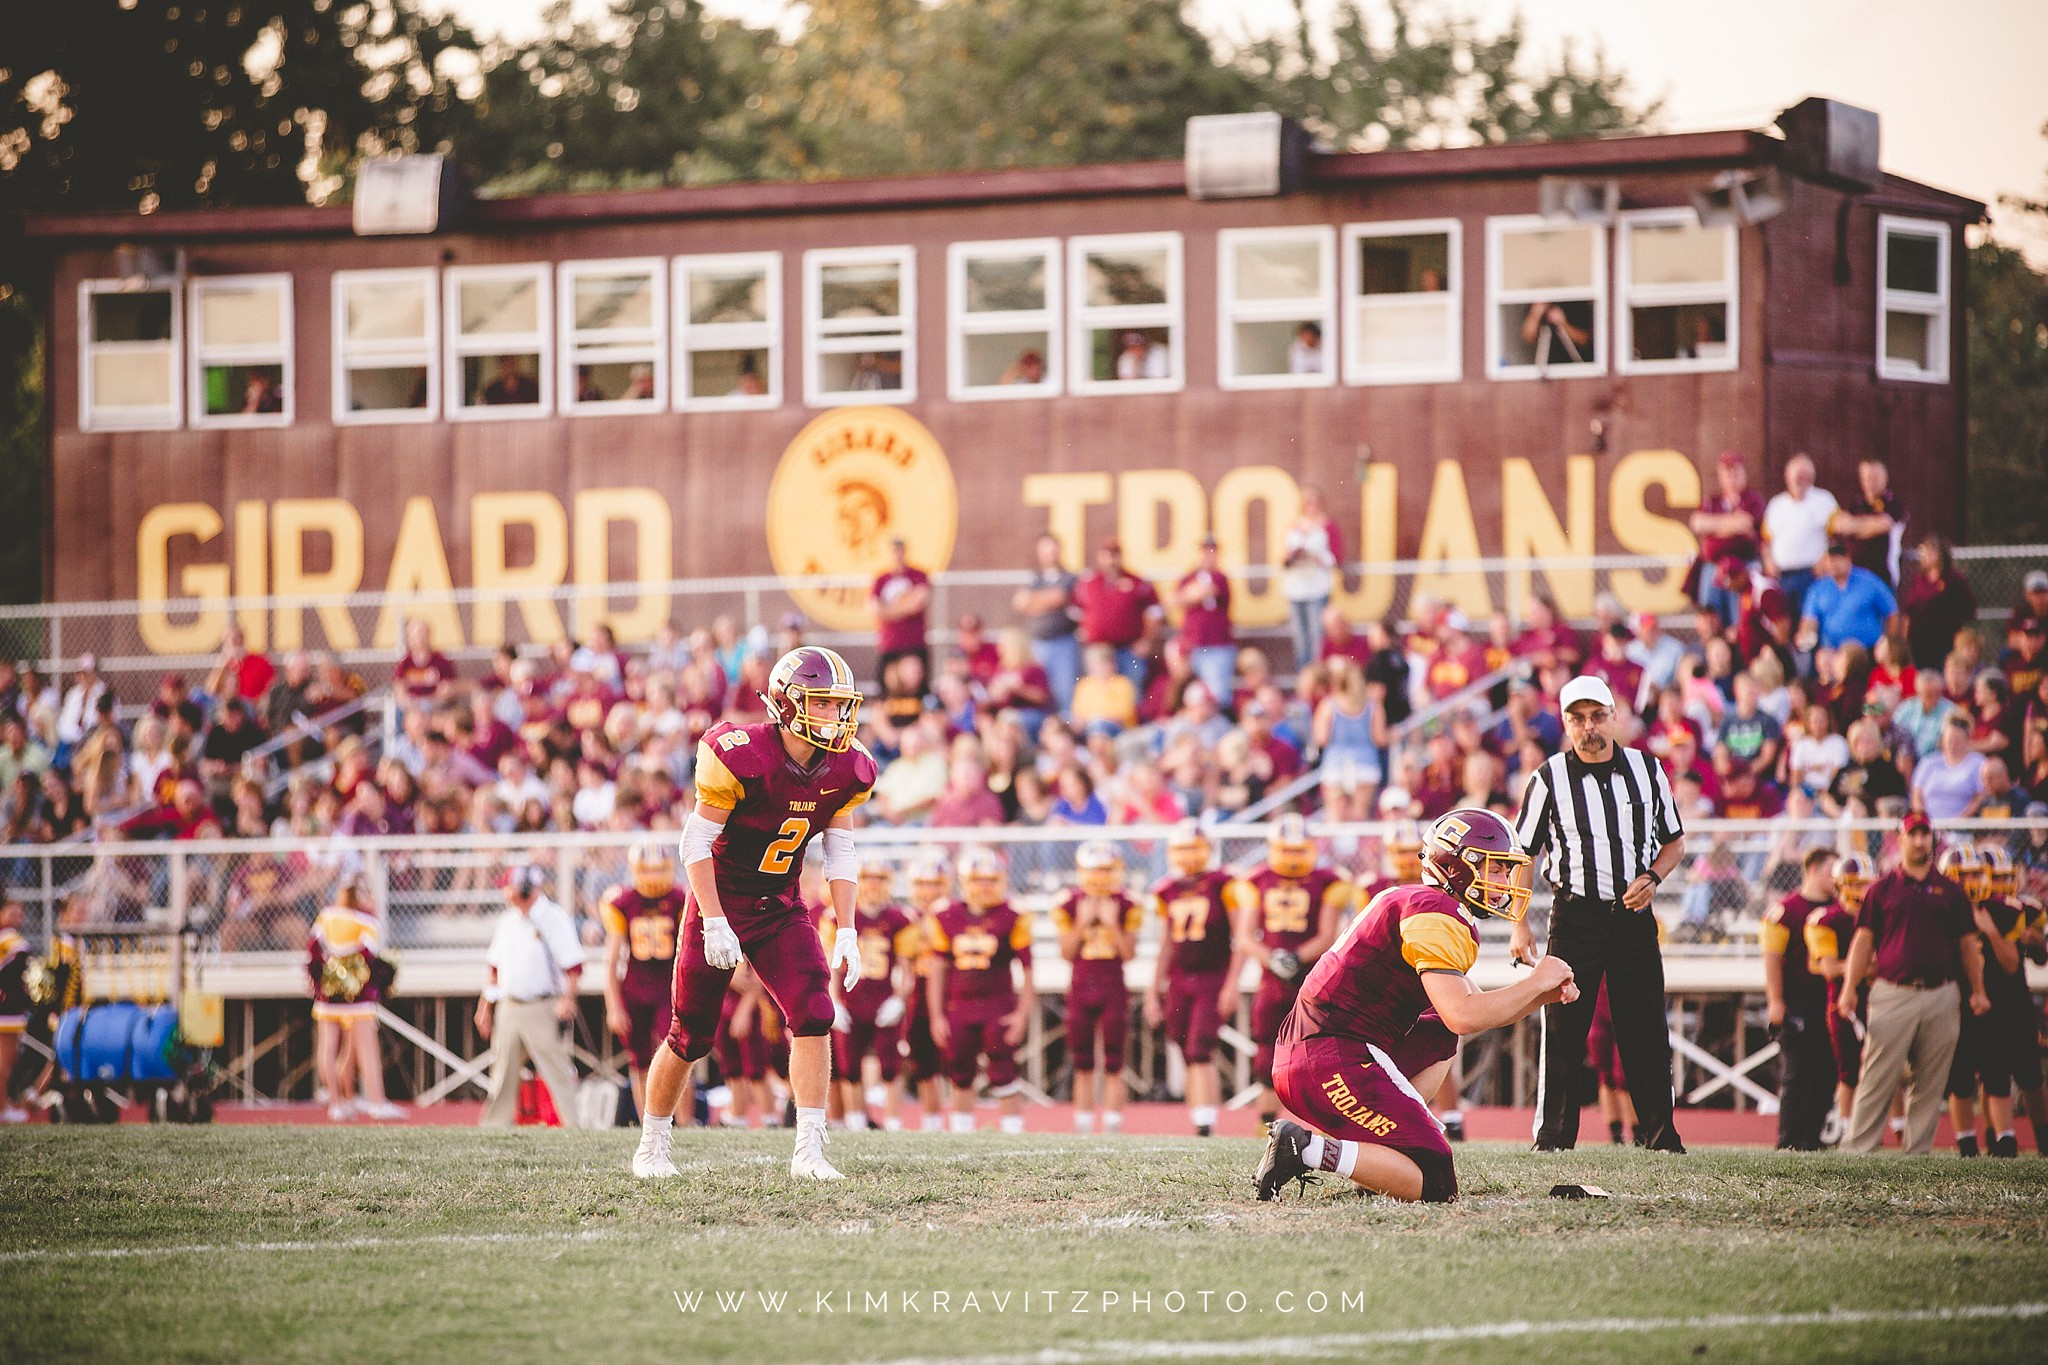 Girard Kansas High School Football 2017 by Kim Kravitz